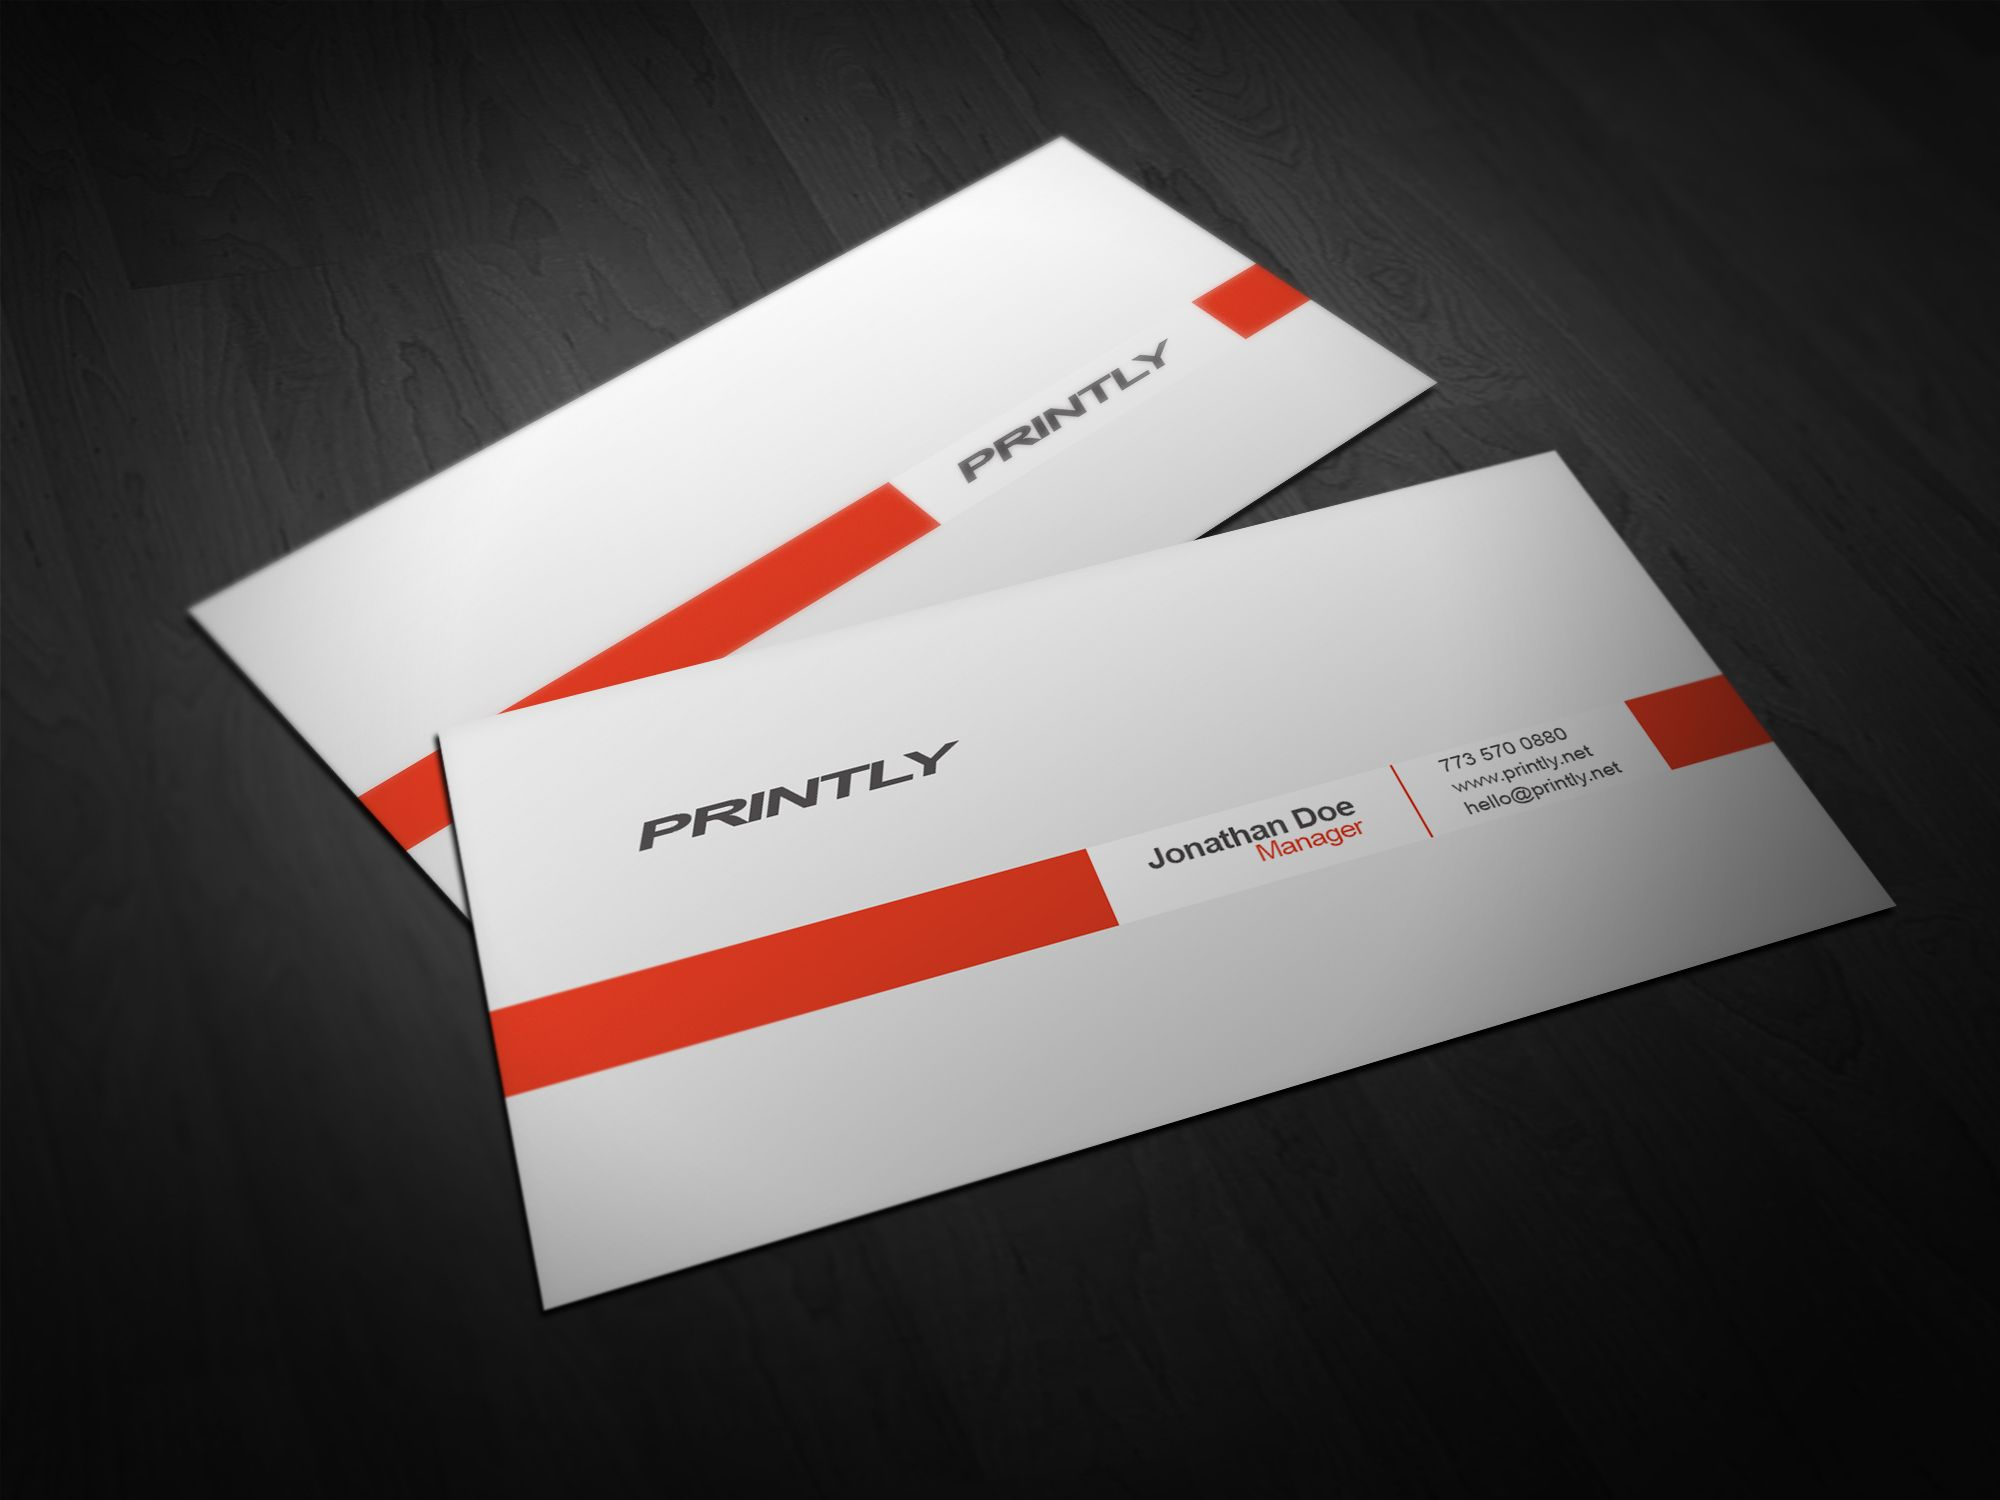 Free Printly PSD Business Card Template PRINTLY Design - Free business cards templates photoshop